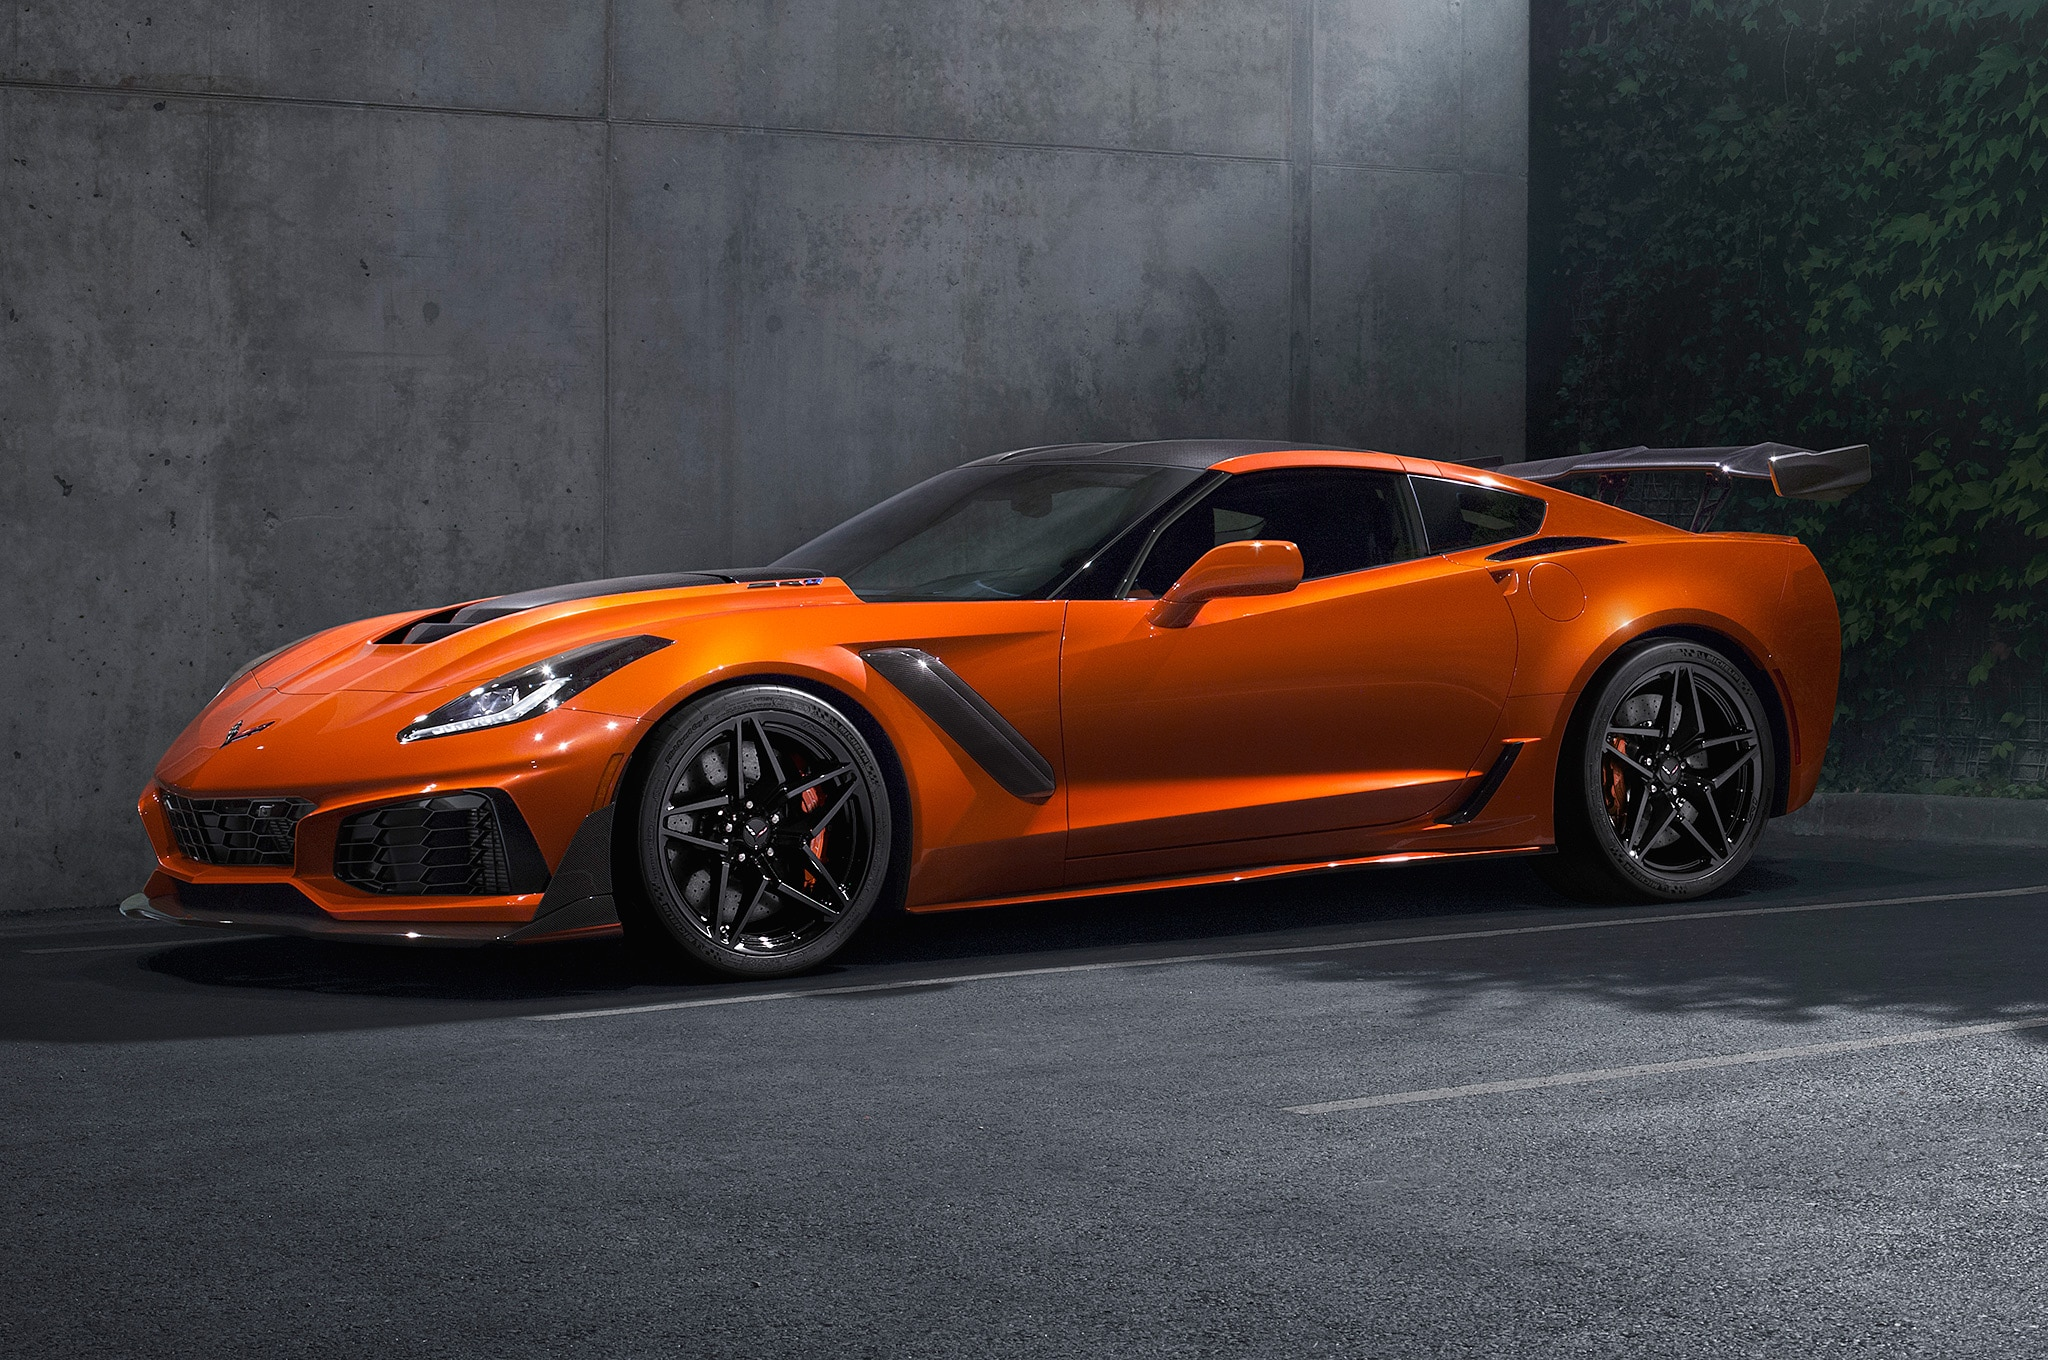 Here Is Your First Look at the 2019 Chevrolet Corvette ZR1